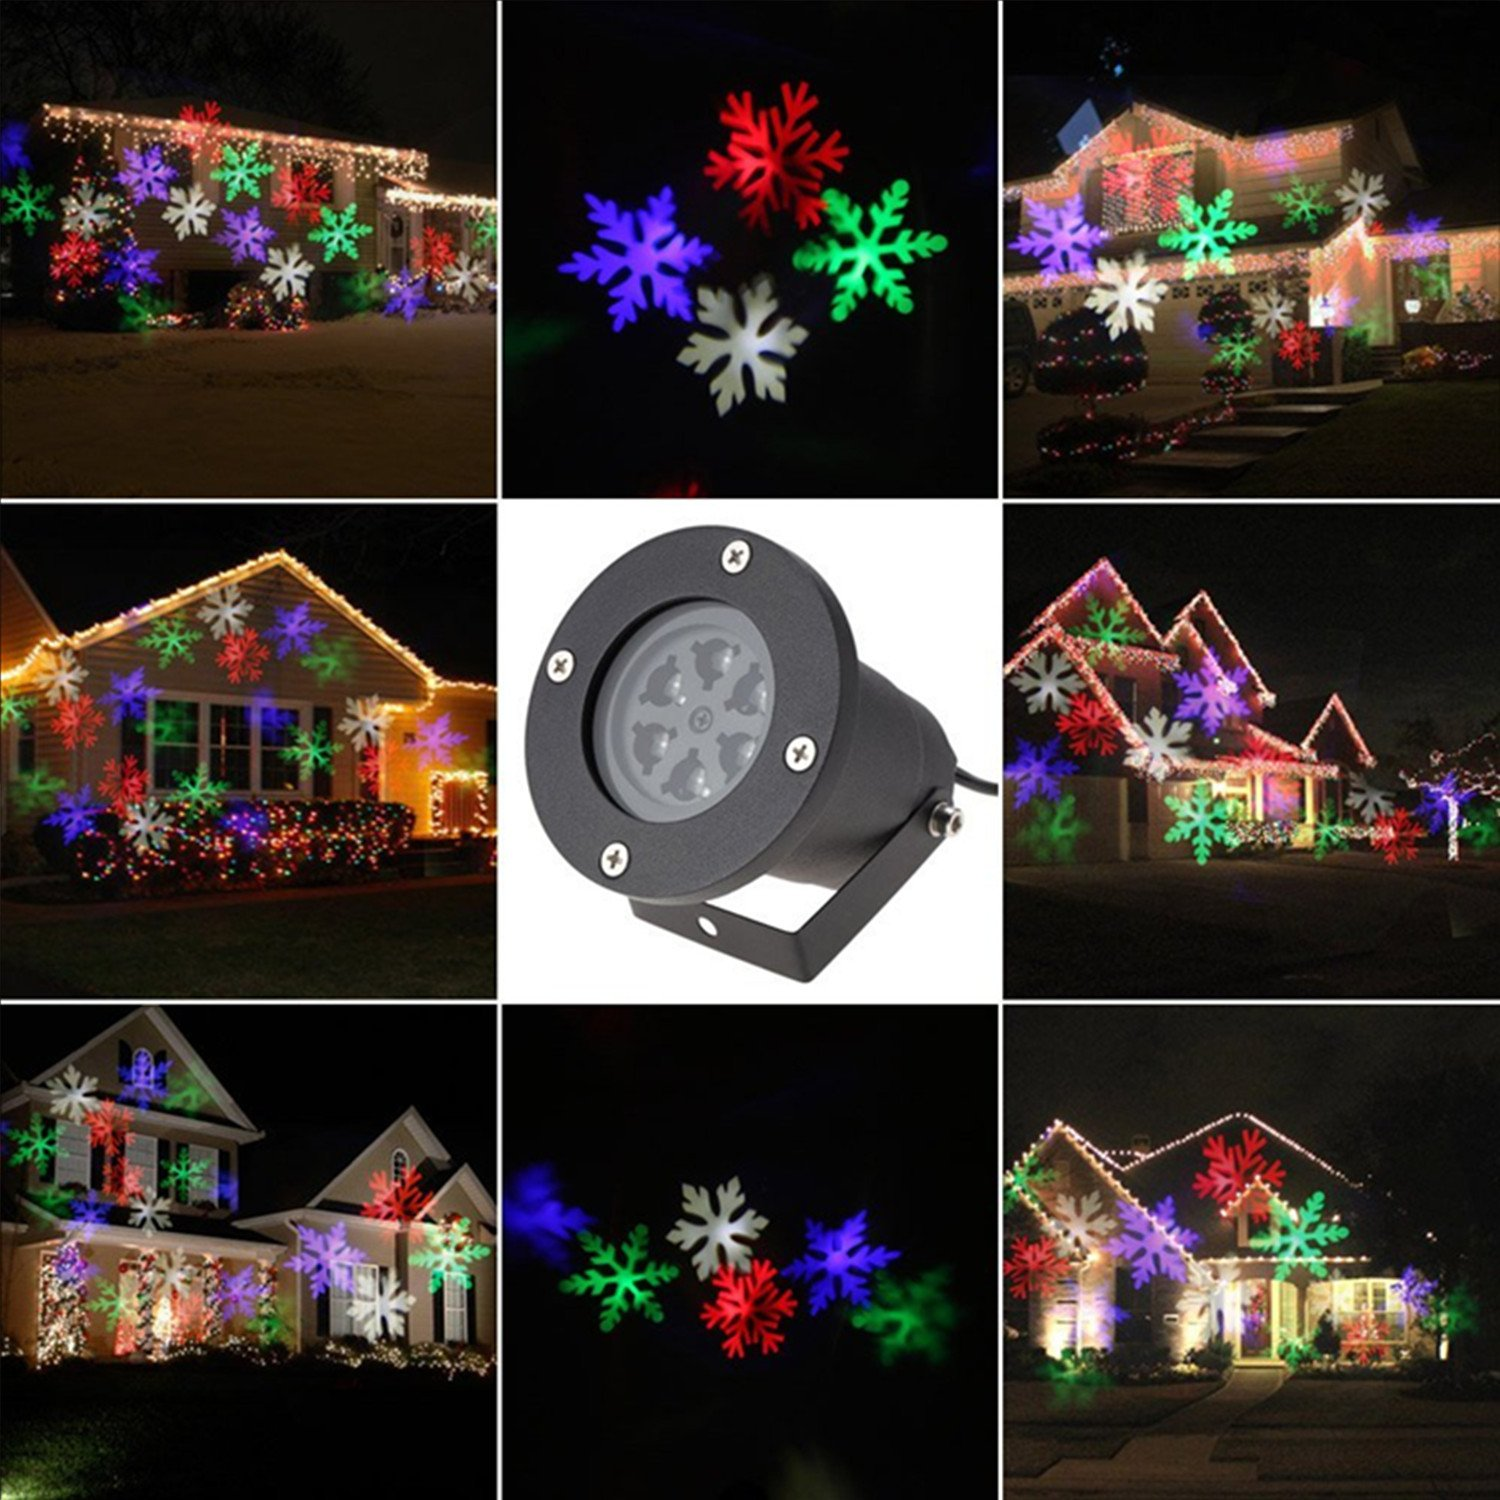 ABCDOK Laser Christmas Lights Outdoor Holiday Light Garden